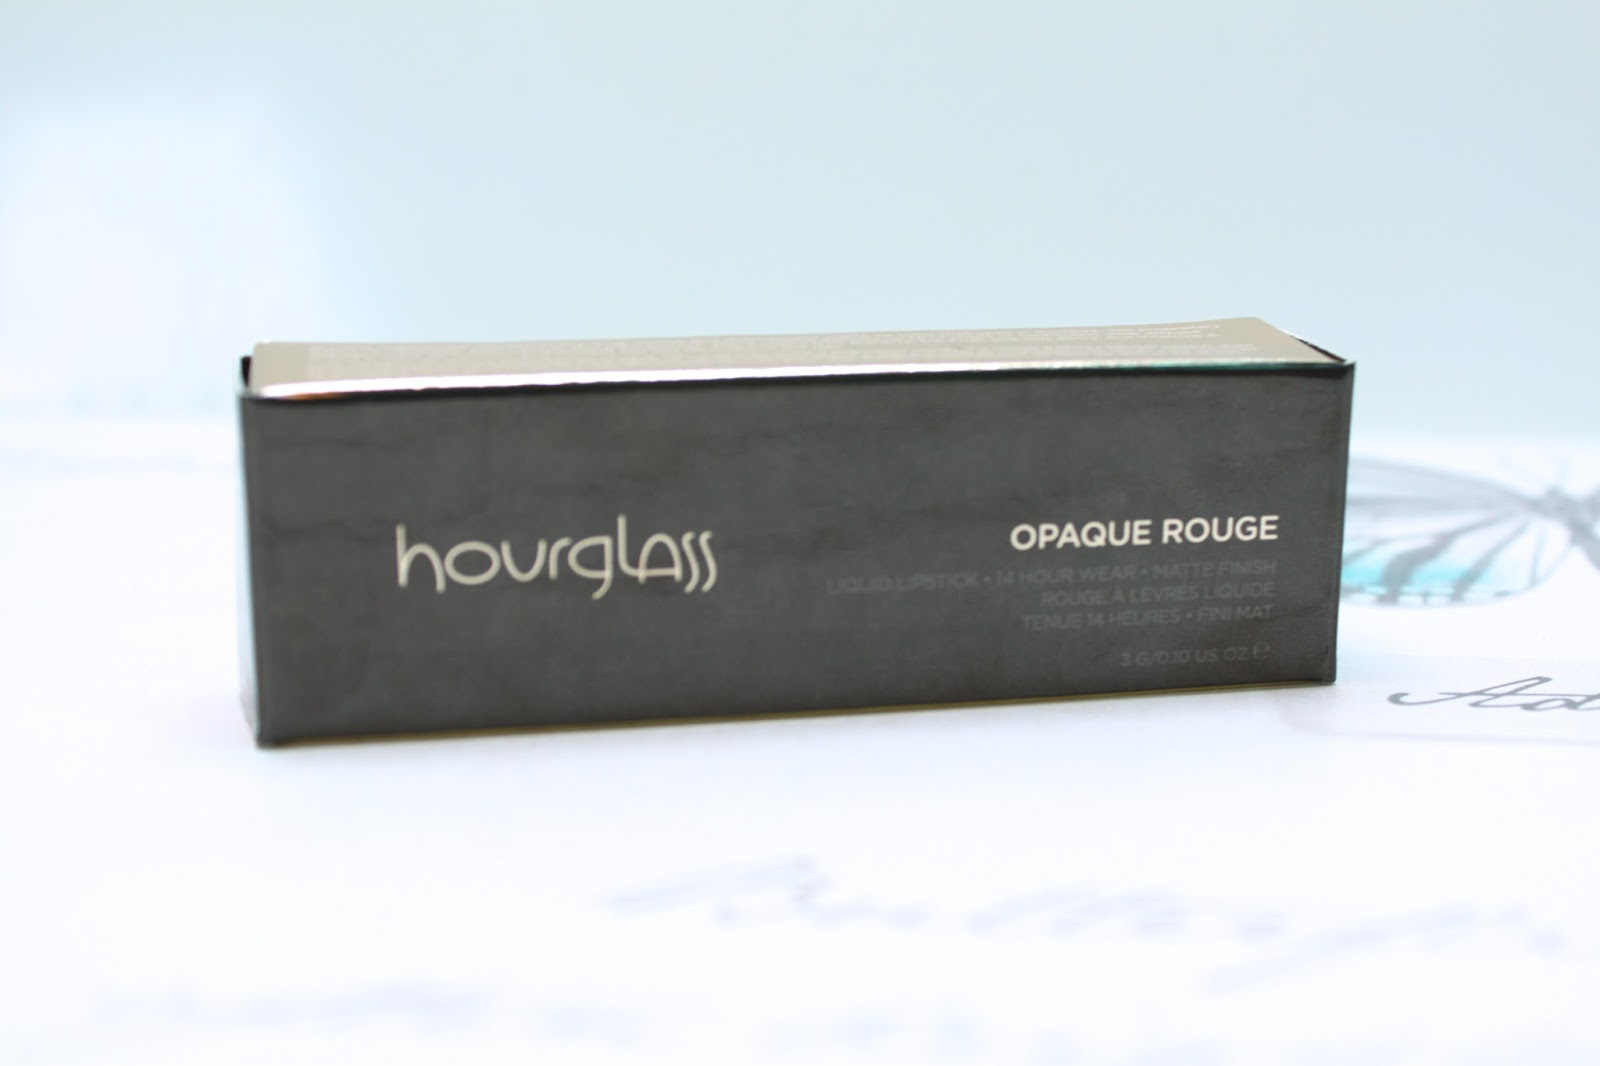 Hourglass Opaque Rouge Lip Polish - In Edition